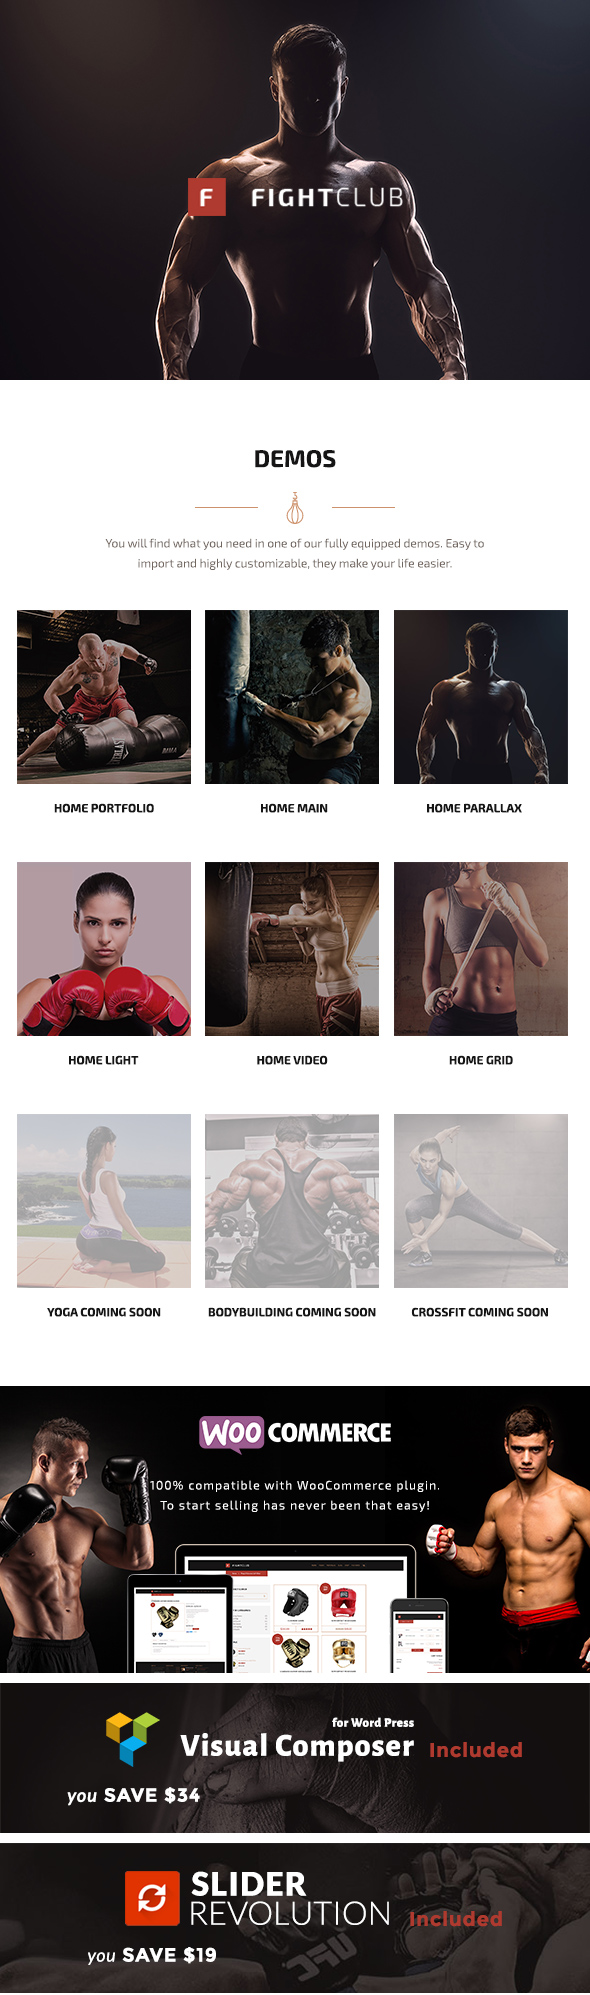 FightClub - Fight & Fitness Club WP Theme